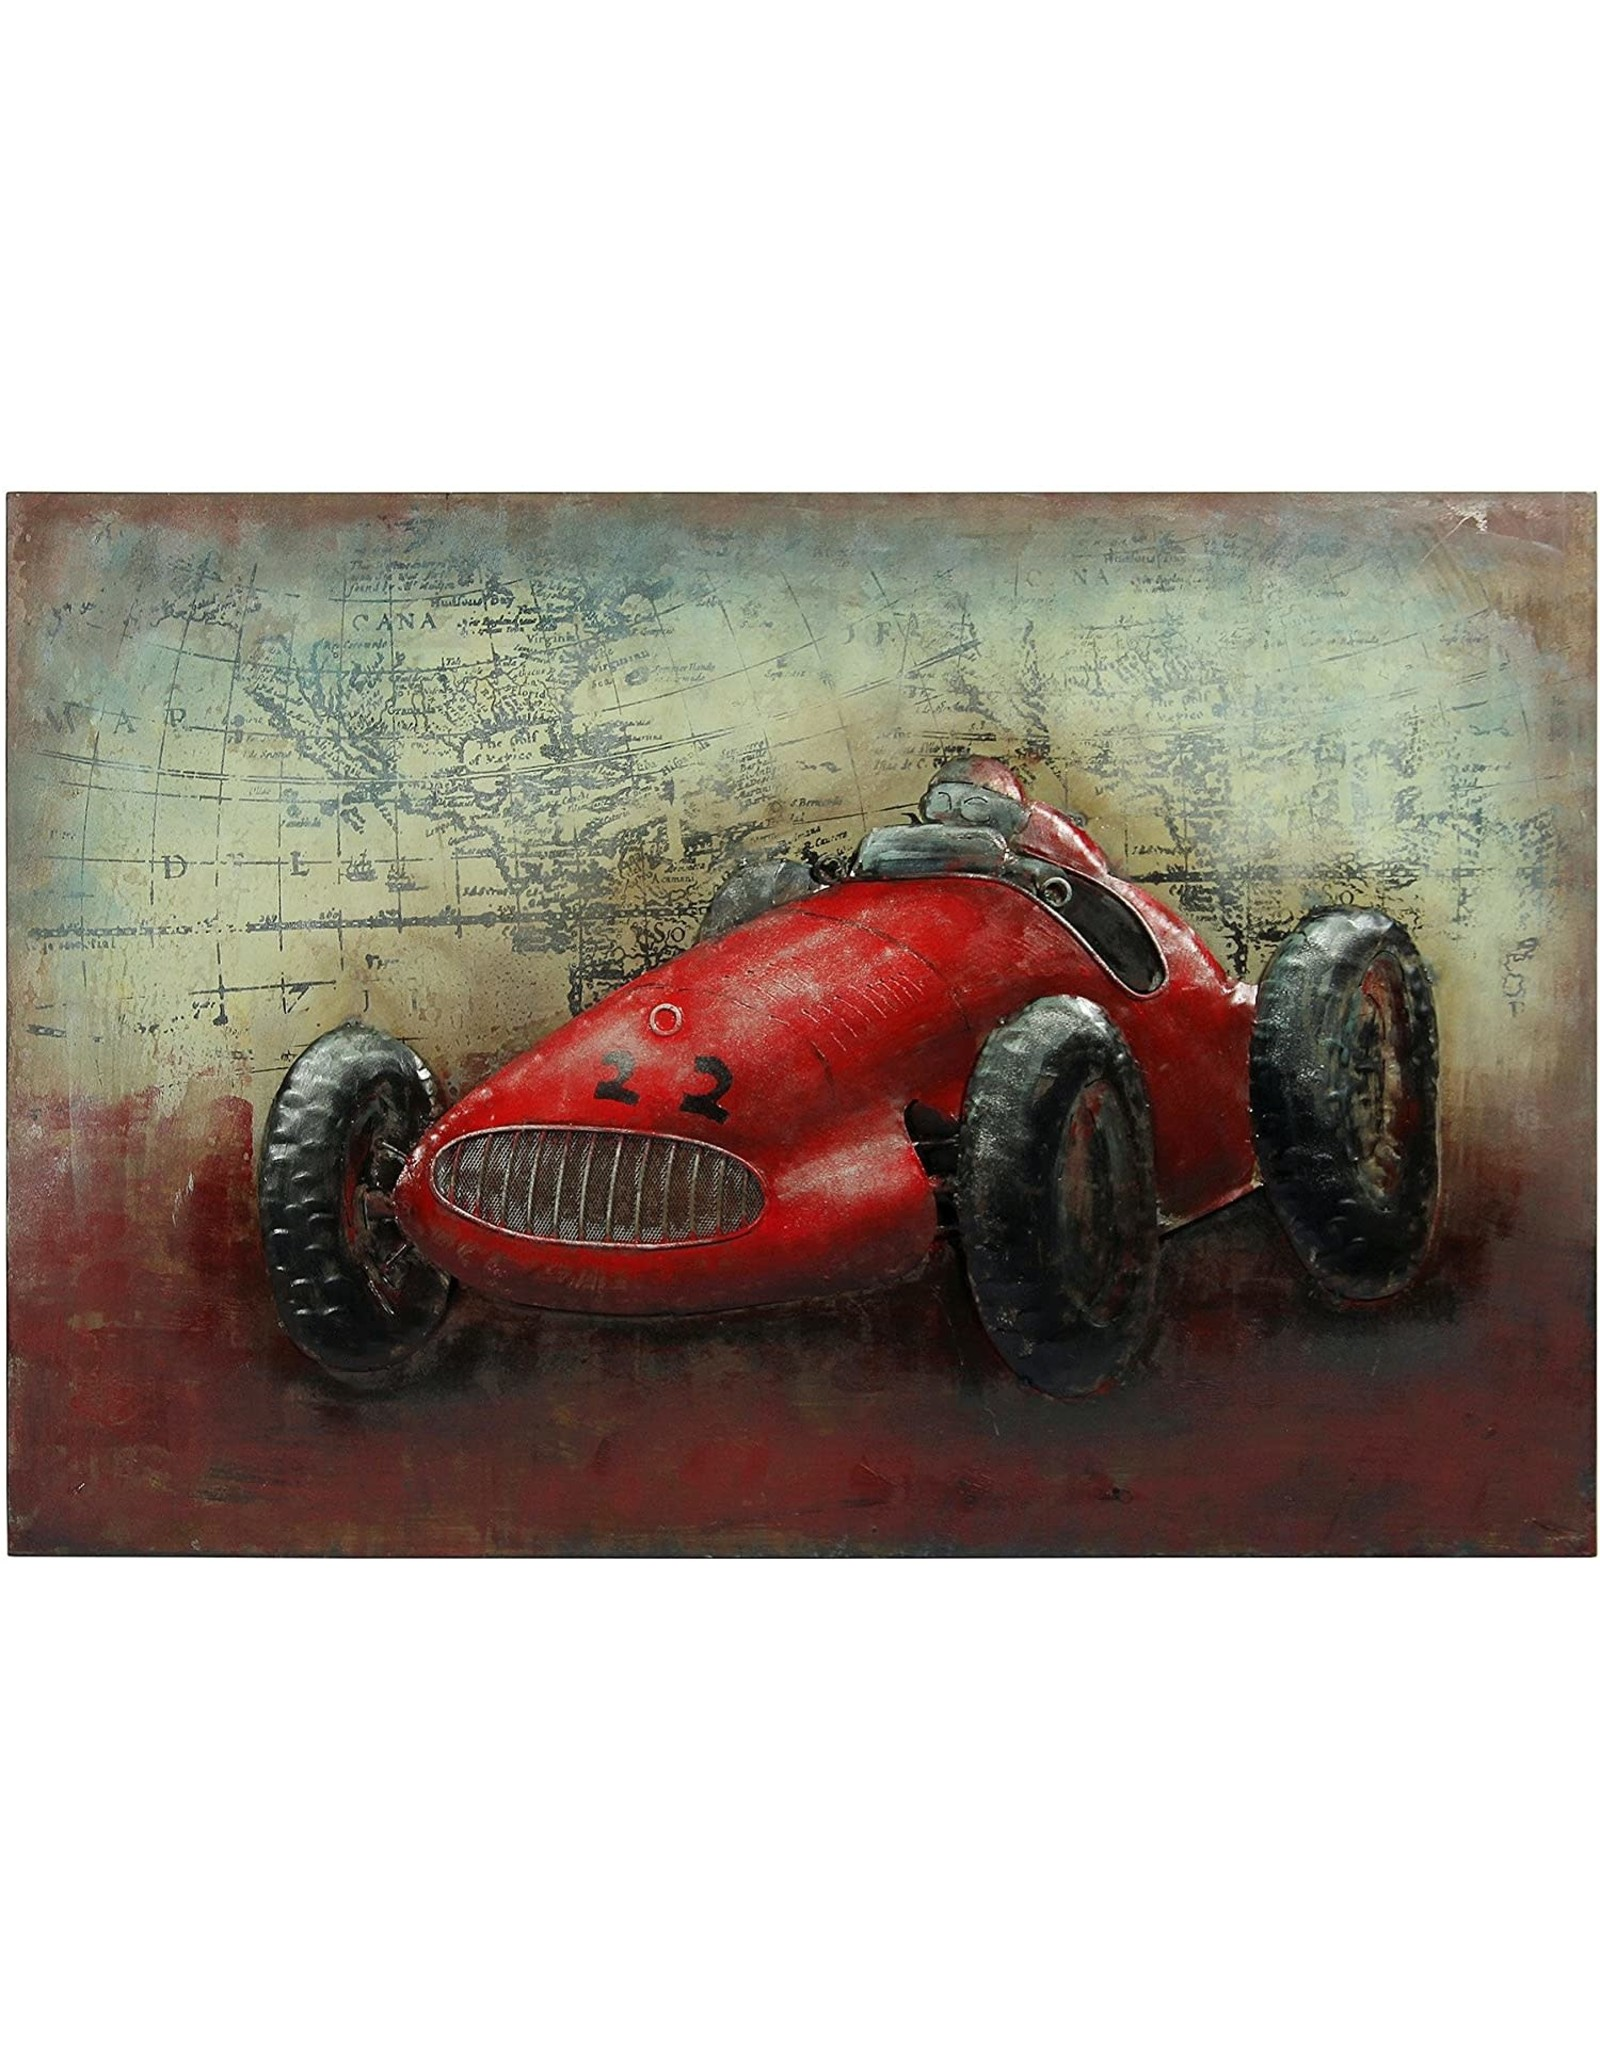 """Empire Art Direct Empire Art Direct Le Mans Mixed Media Iron Hand Painted Dimensional Wall Art Ready to Hang, 32"""" x 48"""" x 3"""""""